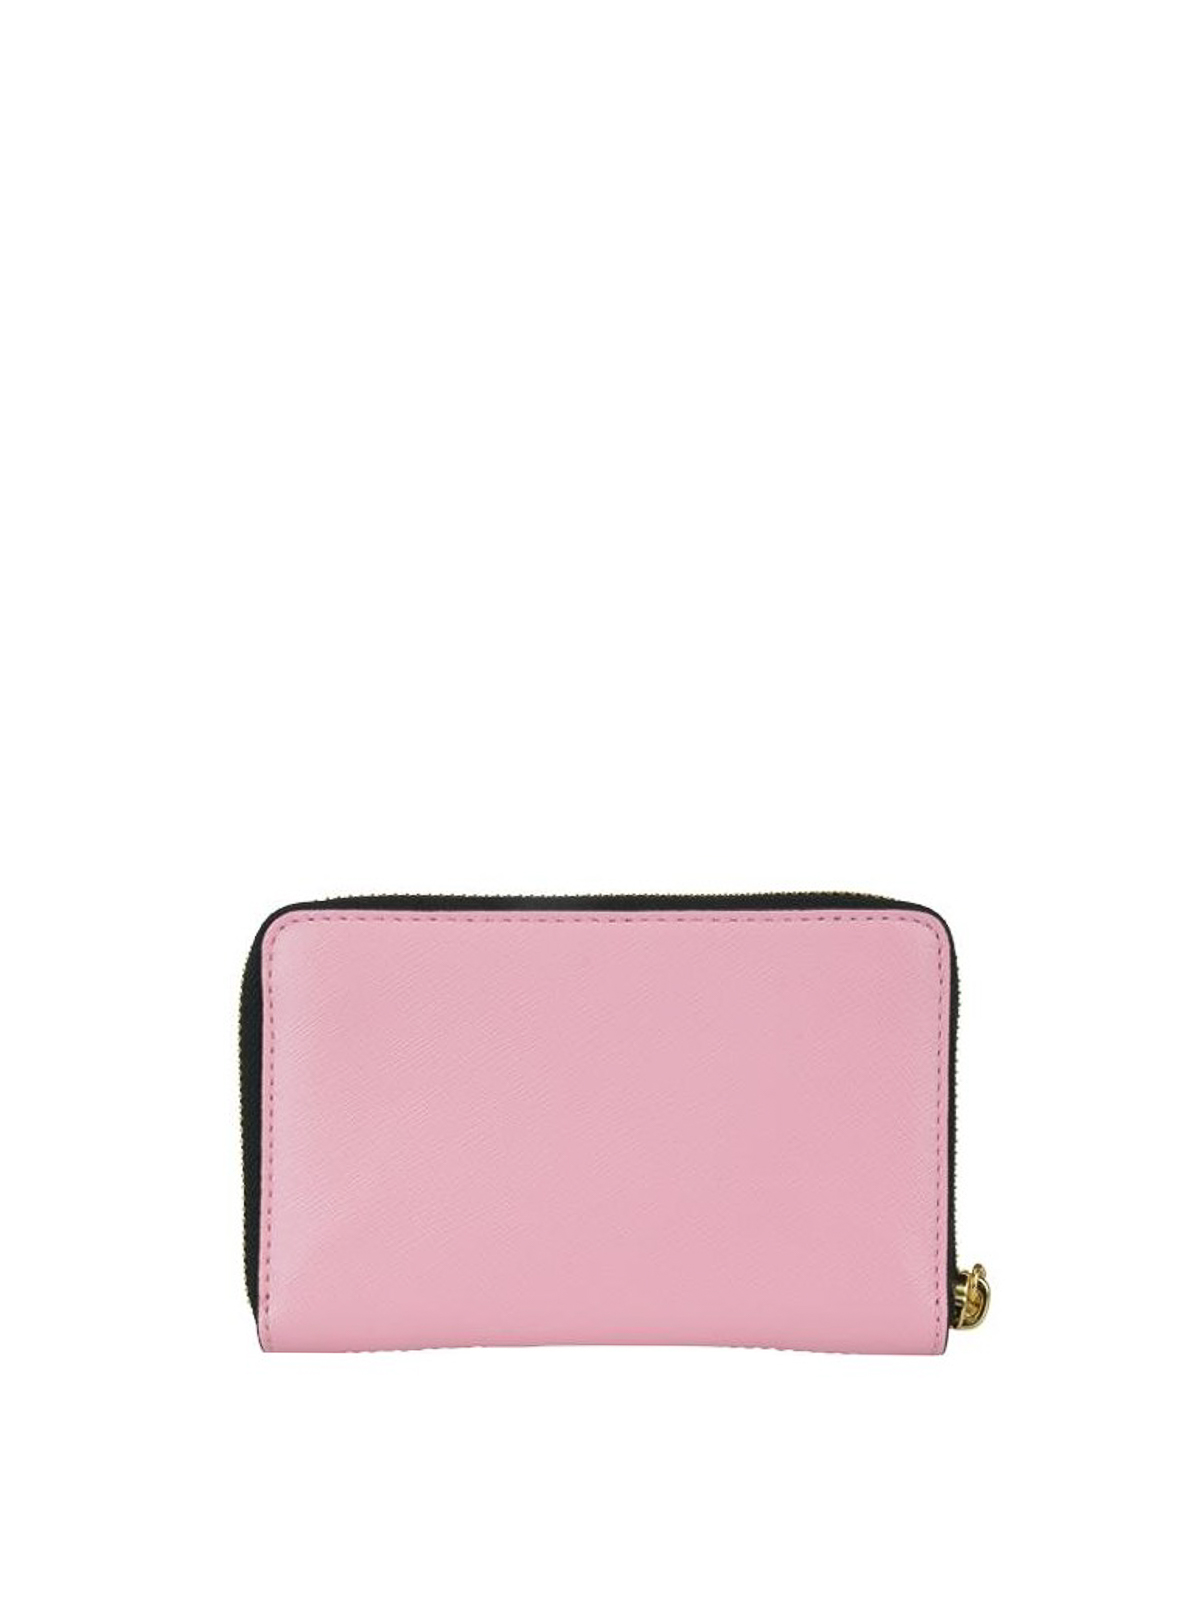 09b025414a iKRIX MARC JACOBS: wallets & purses - Snapshot black and pink wallet